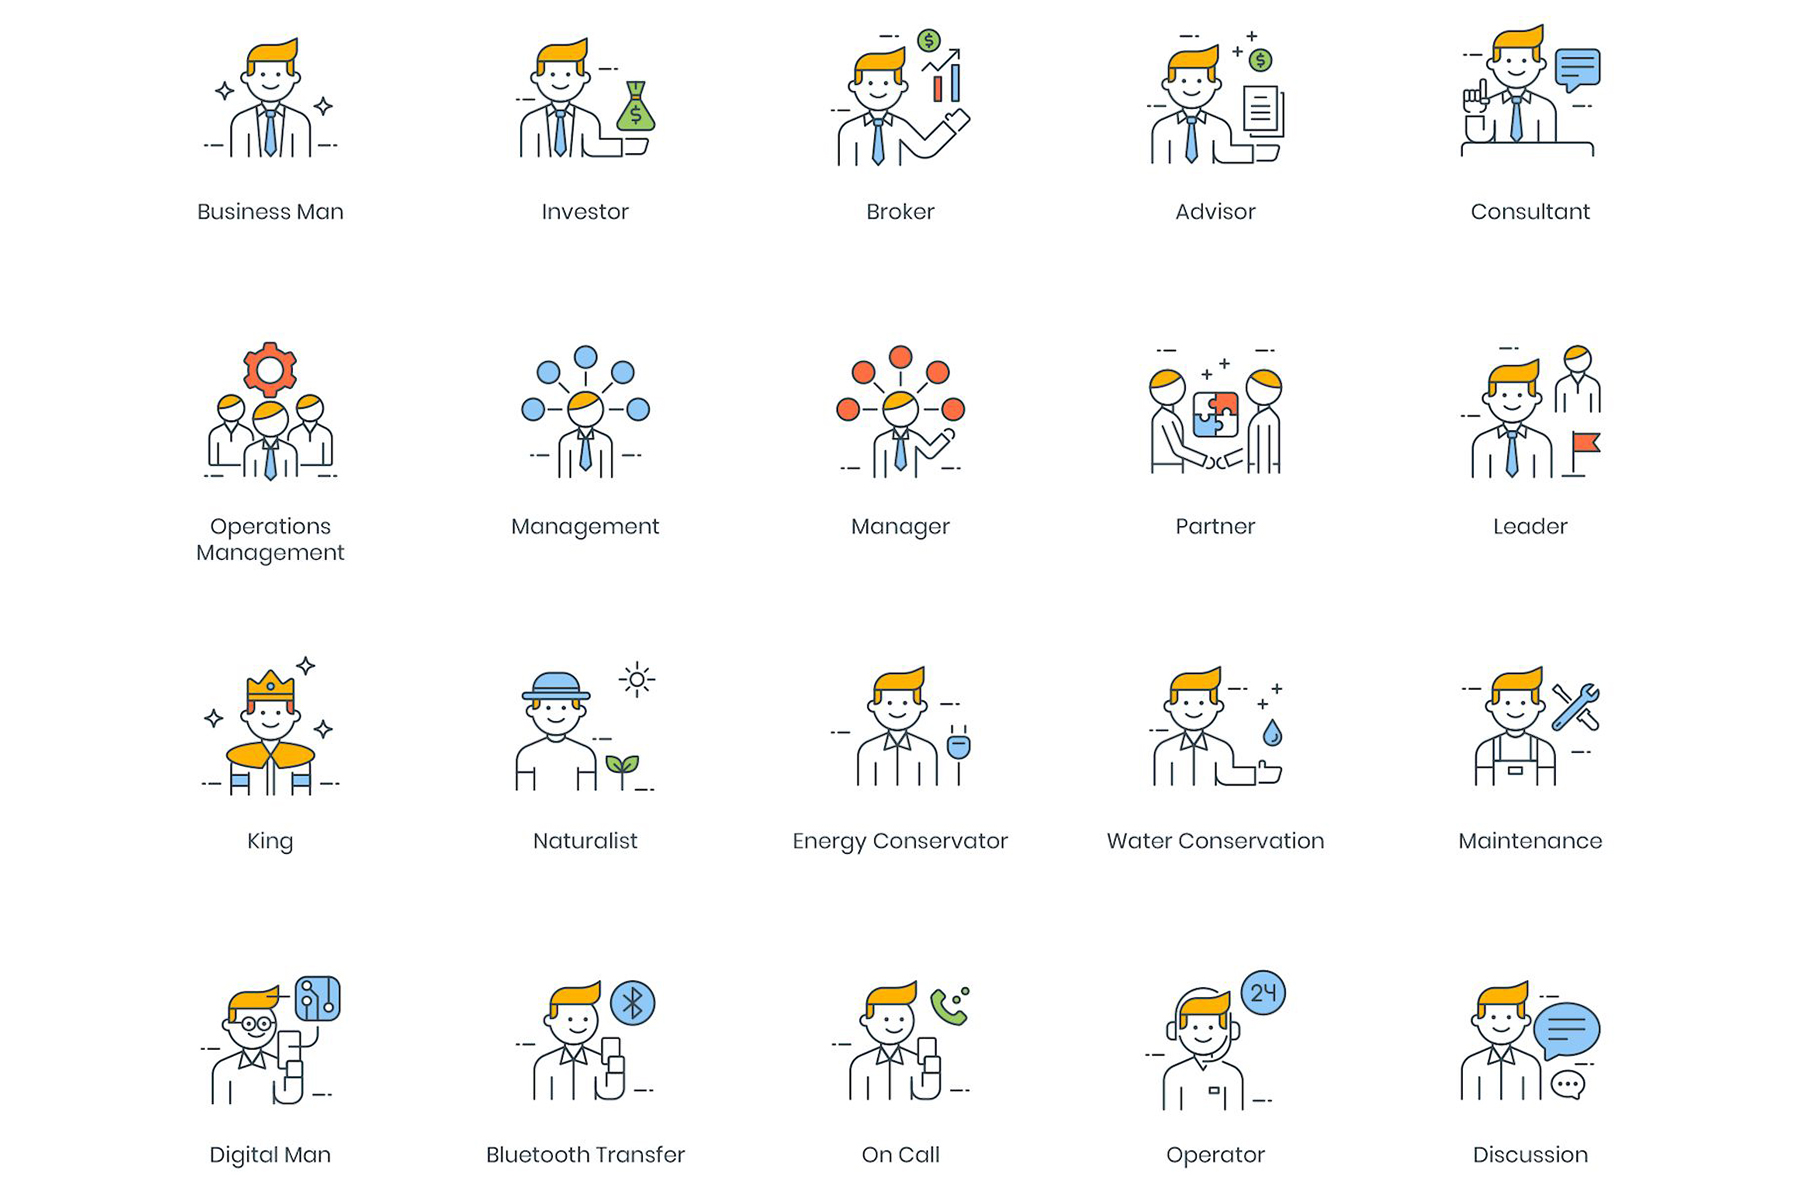 95 Business People Icons - ColorPop Series Iconset Template